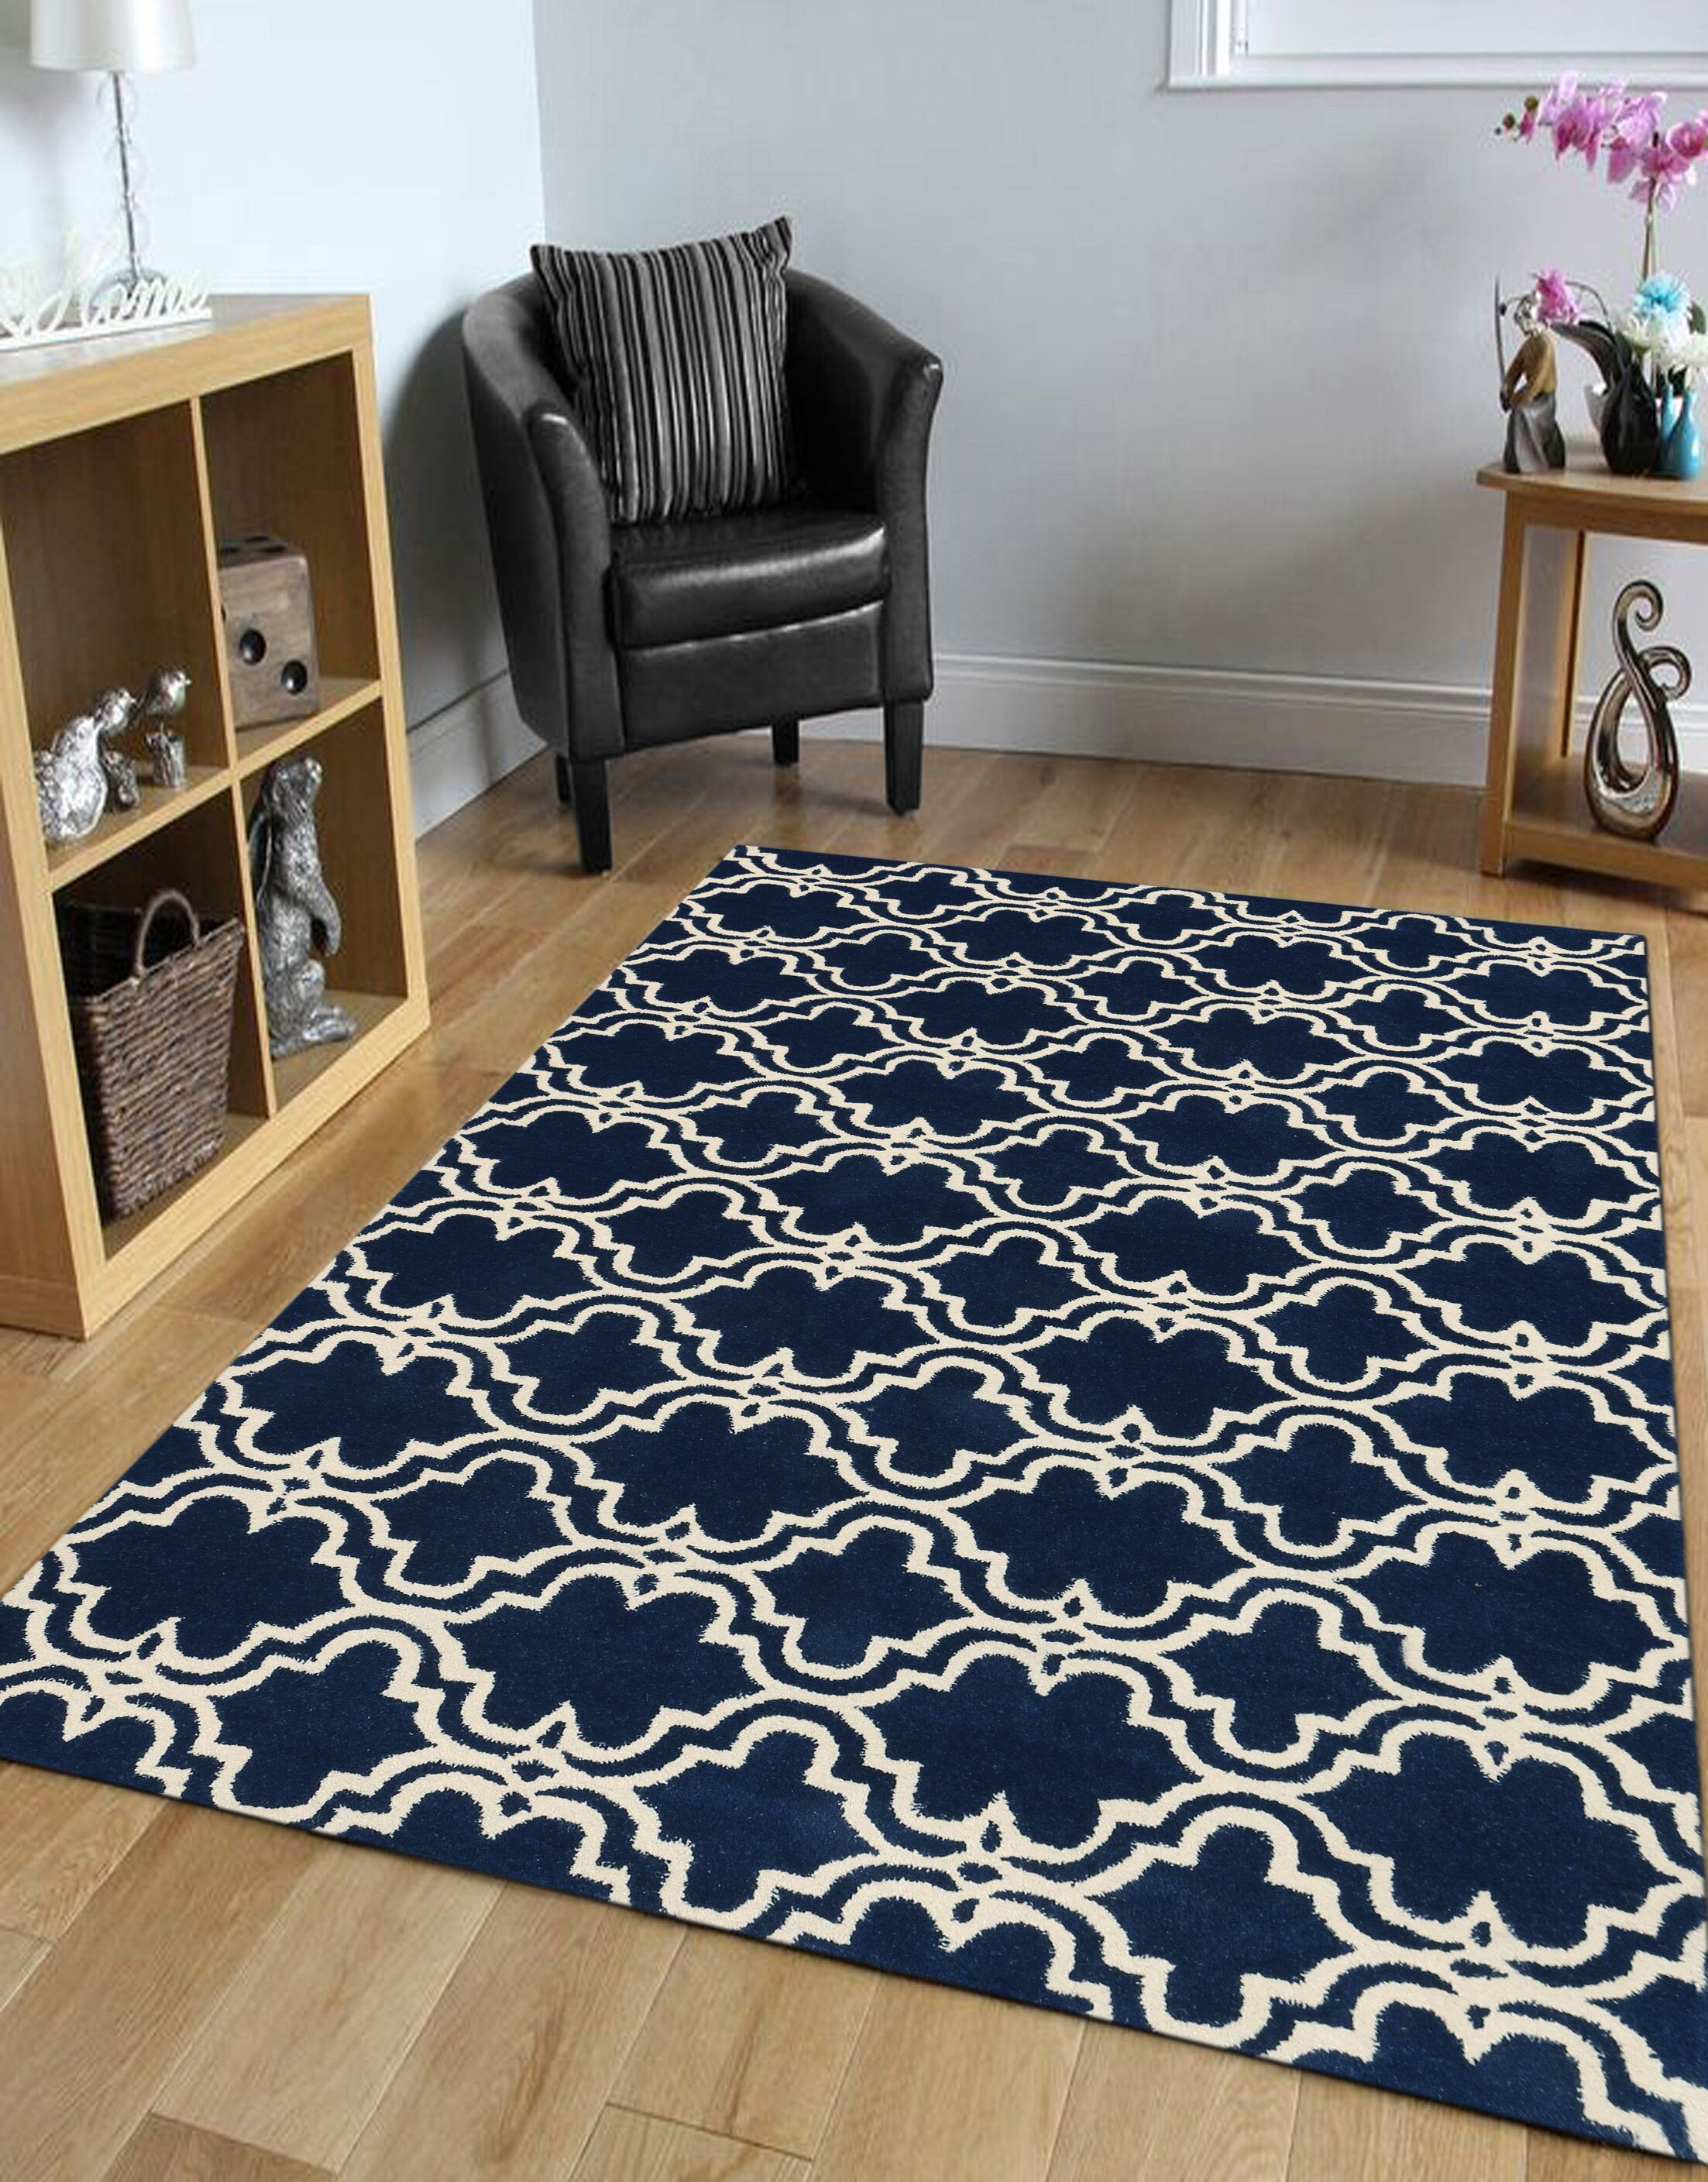 Ladd Trellis Wool Hand-Tufted Navy Area Rug Rug Size: Rectangle 8' x 10'